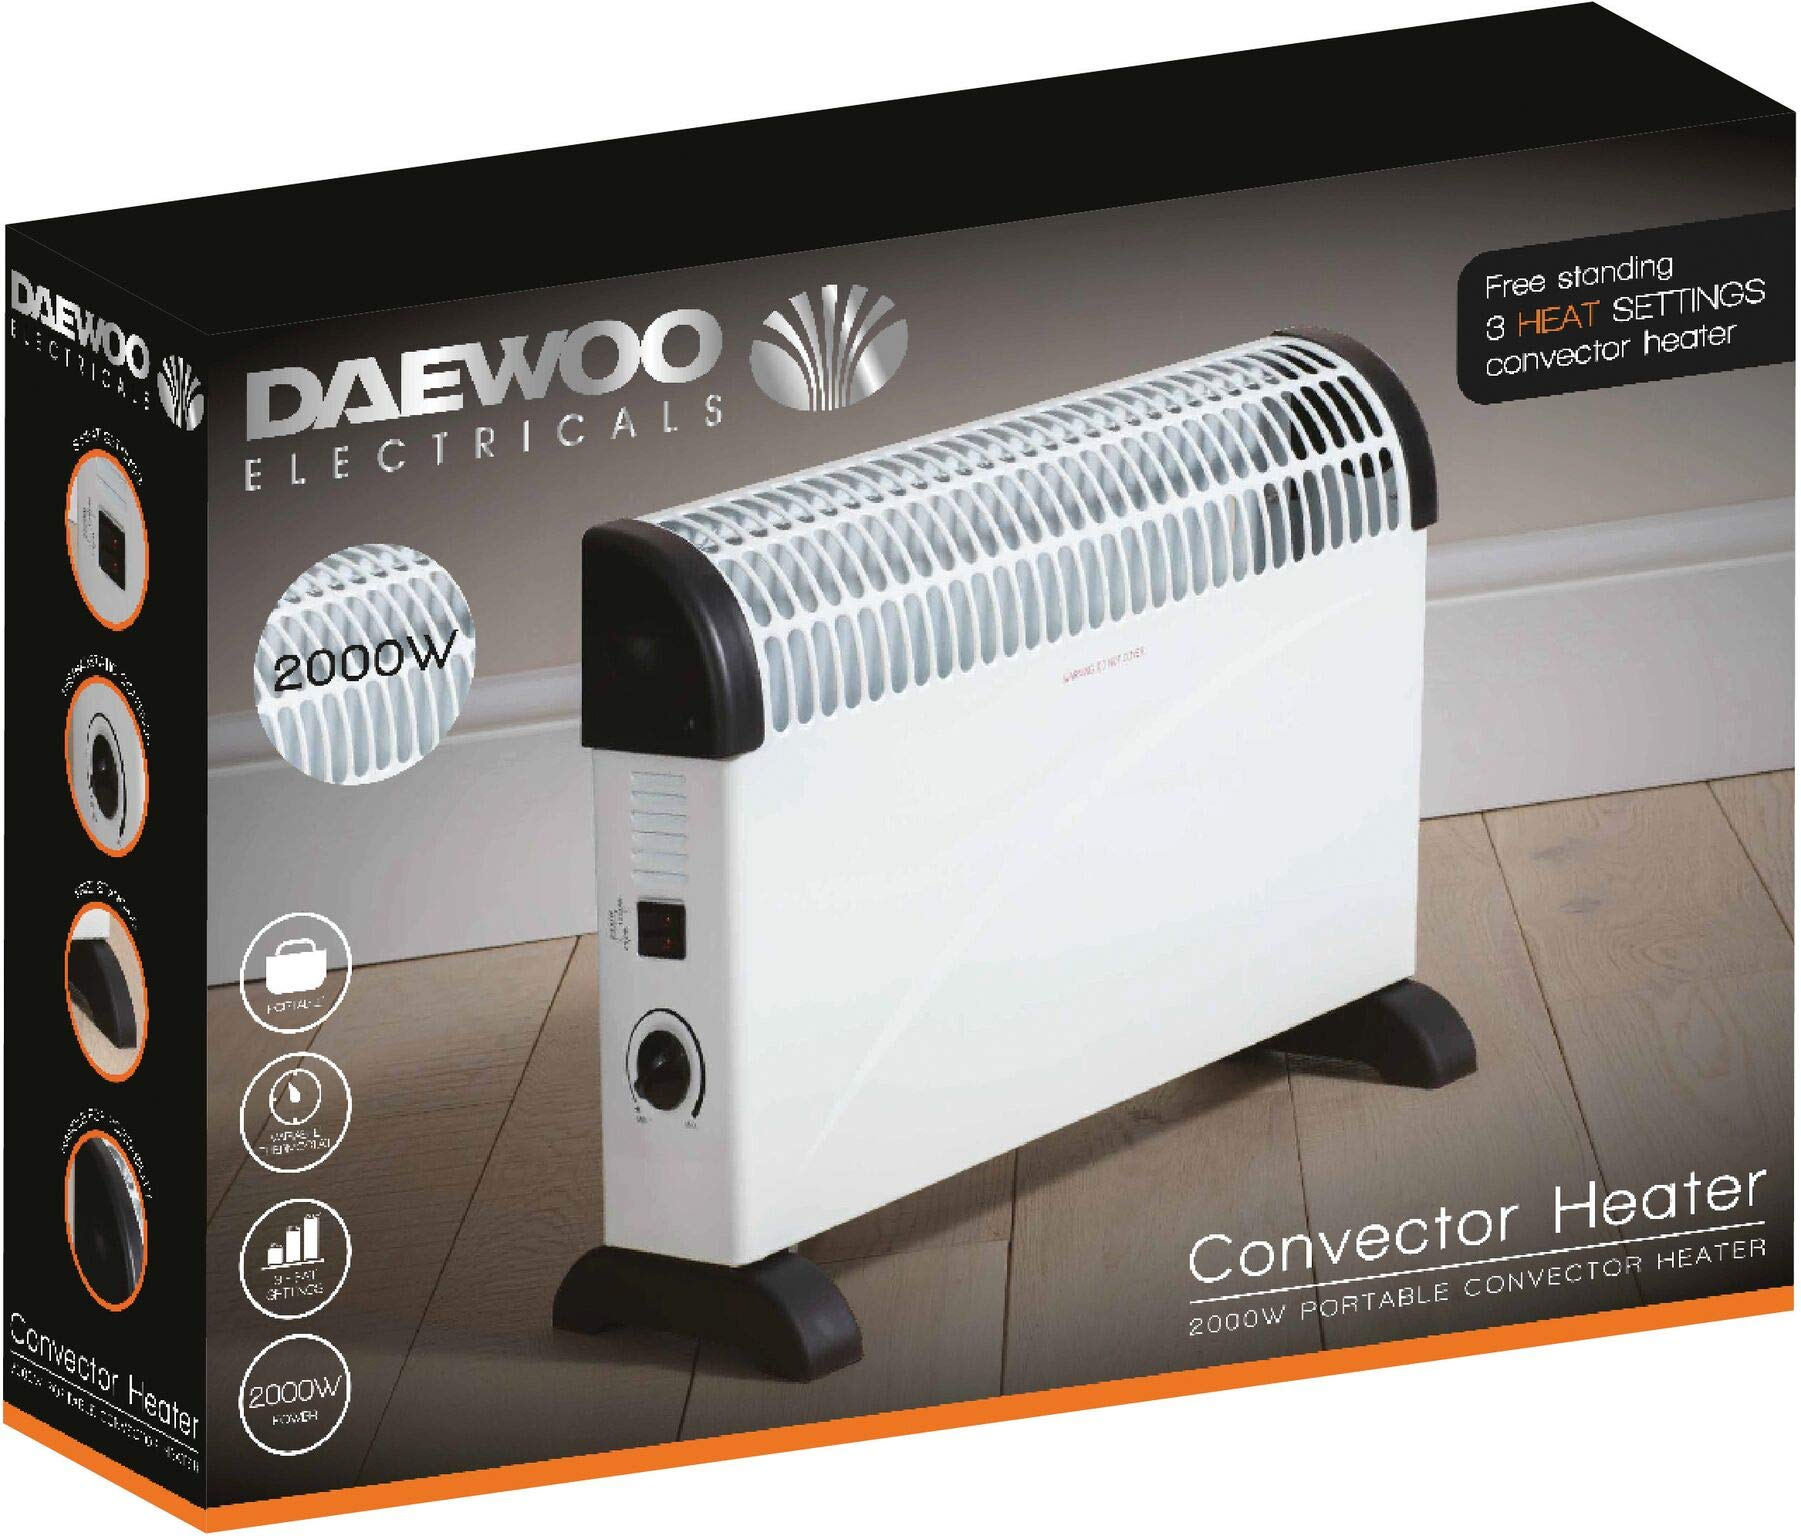 7102%2Bb2wiFL - Daewoo Free Standing Bedroom/Kitchen 2000W Convector Heater with 3 Heat Settings, Safety Cut-Out Function with…